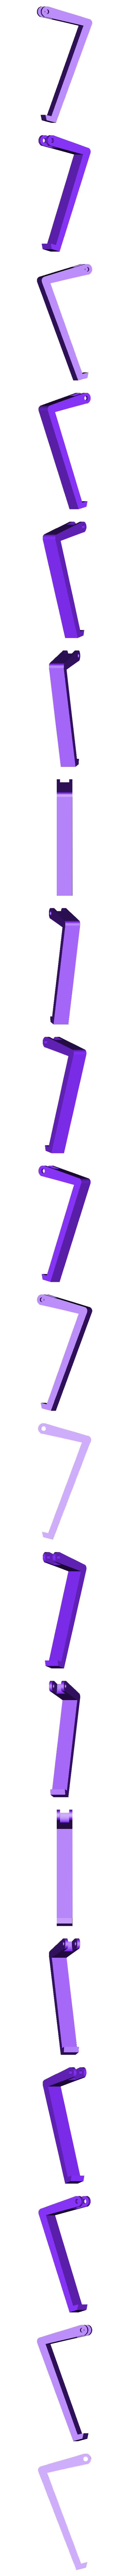 Arm_2_Techy_Mechy_Mechanisms.stl Download free STL file Matt's Mechanism(Useless but alarmingly fun to play with) • 3D printable model, matthewdwulff